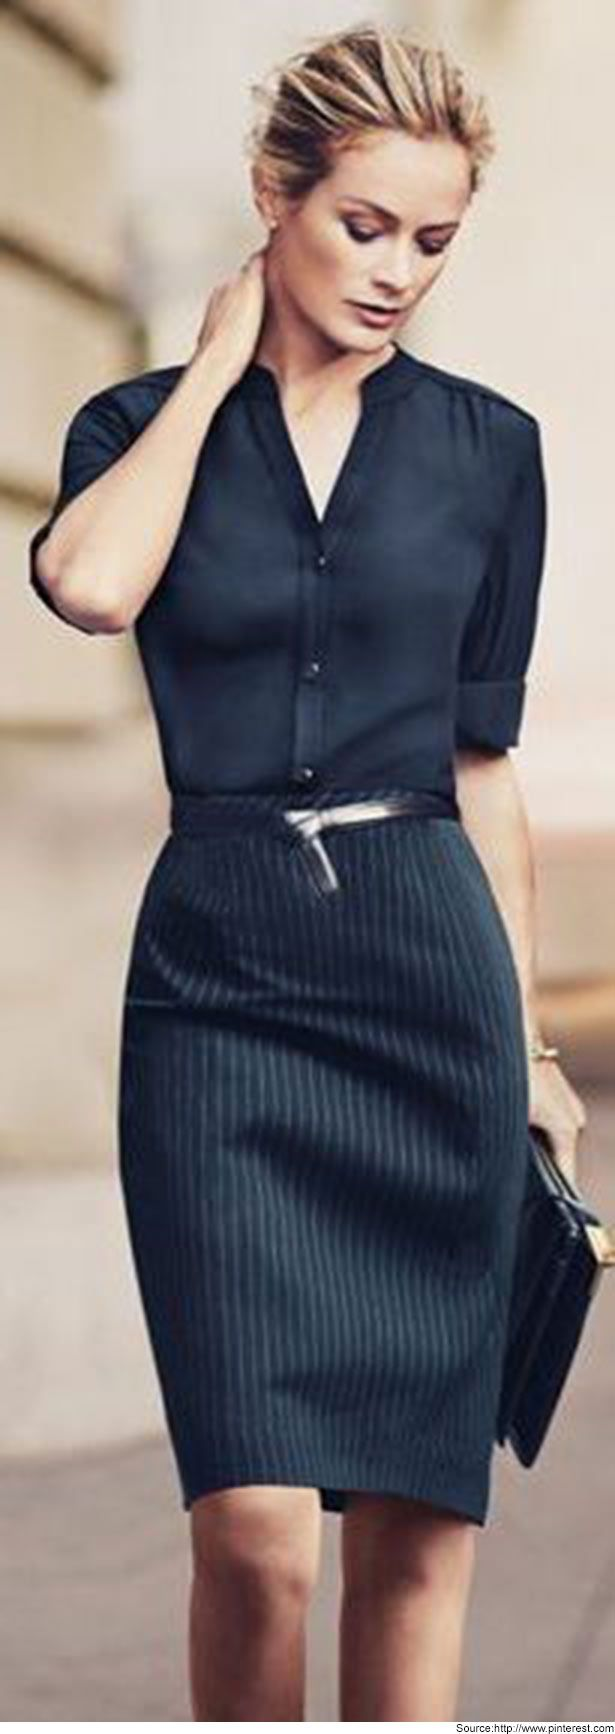 a72b6b9981 Blouses and shirts for the formal look with pencil skirt... Read more at